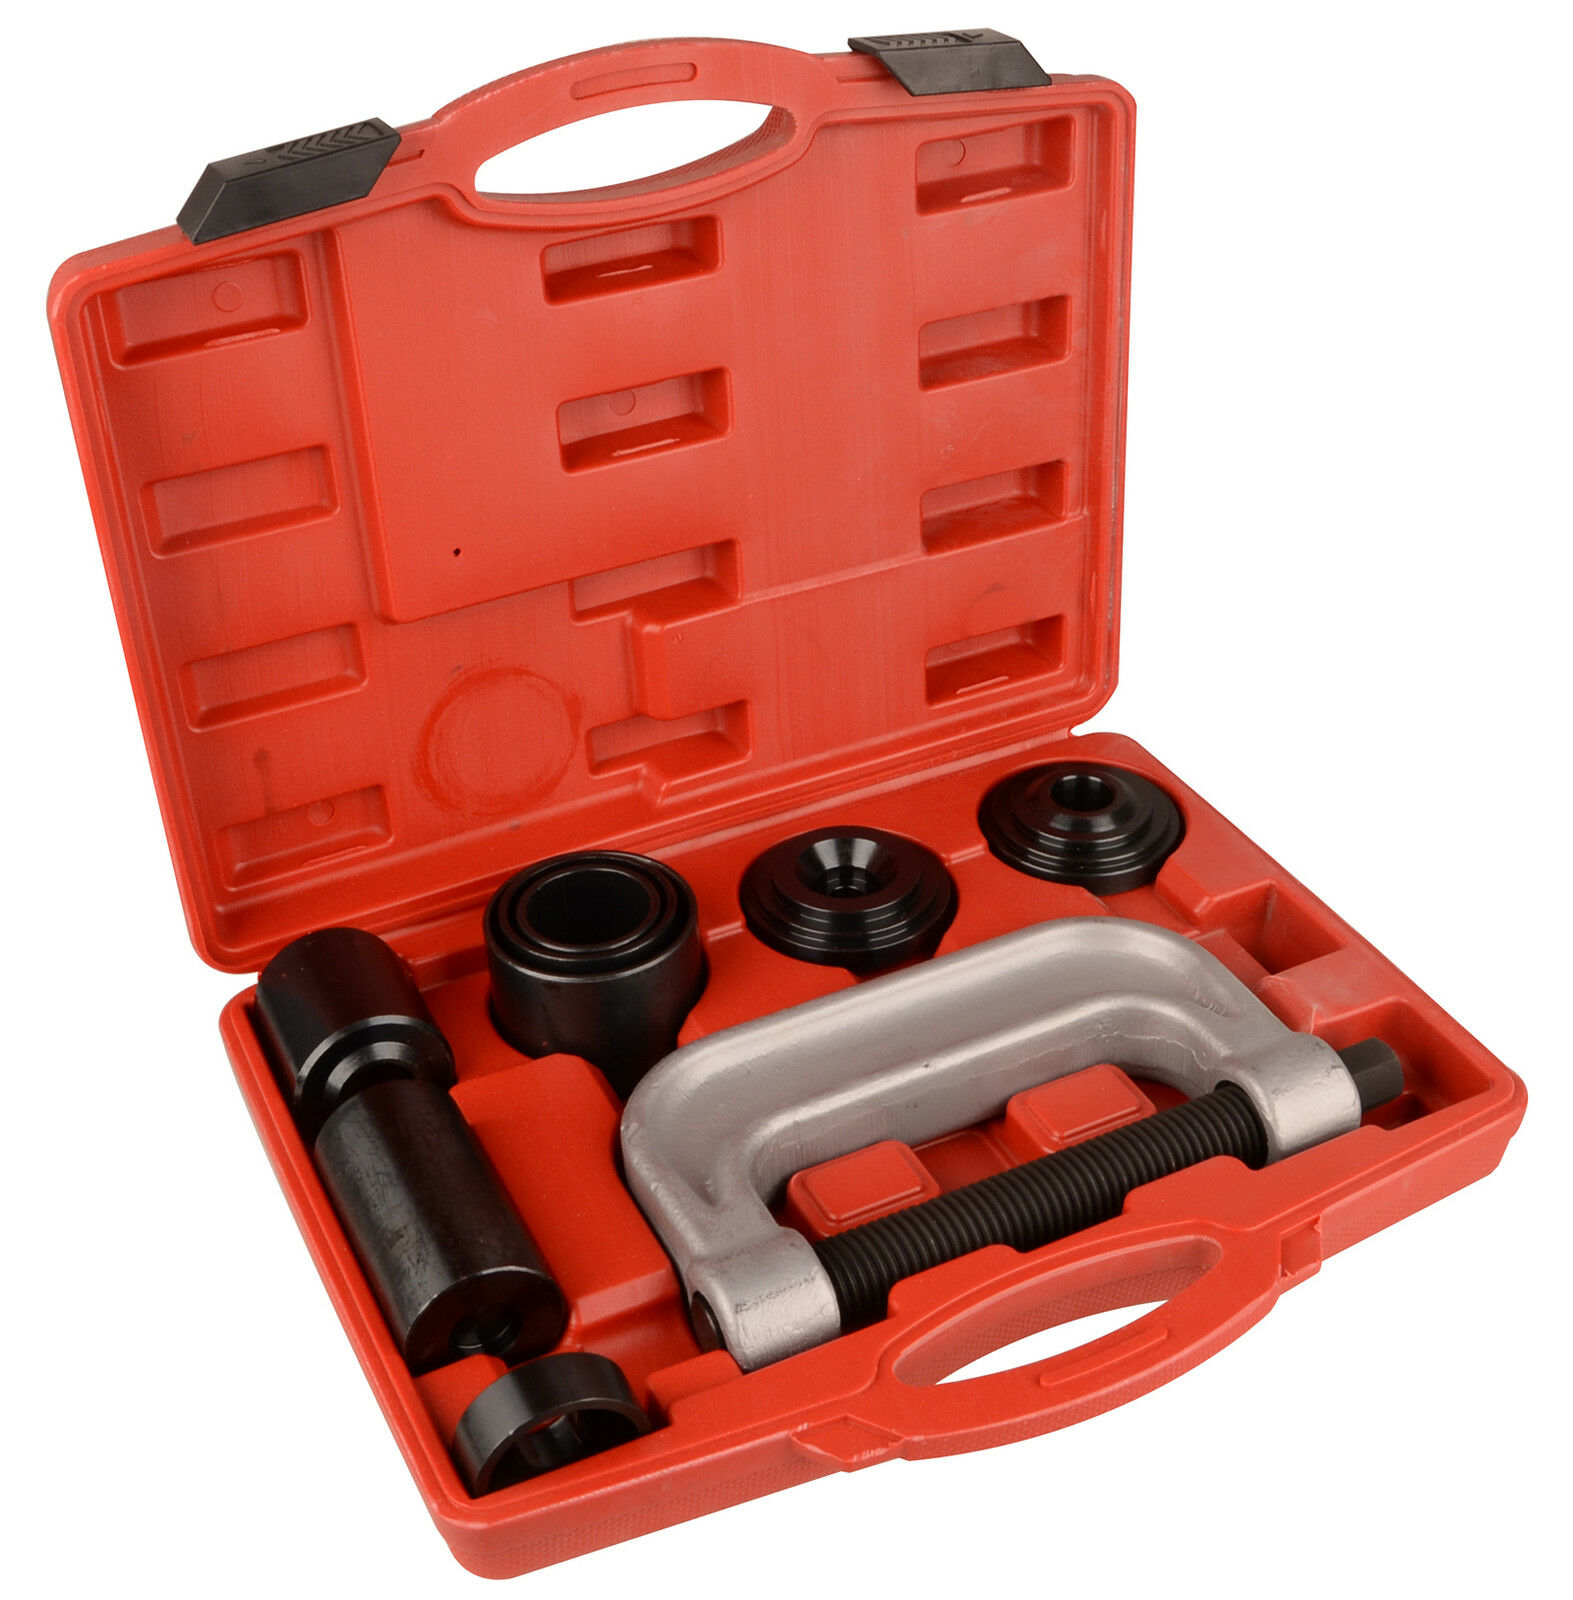 Owner Heavy Duty 4 in 1 Ball Joint Press & U Joint Removal Tool Kit with 4x4 Adapters